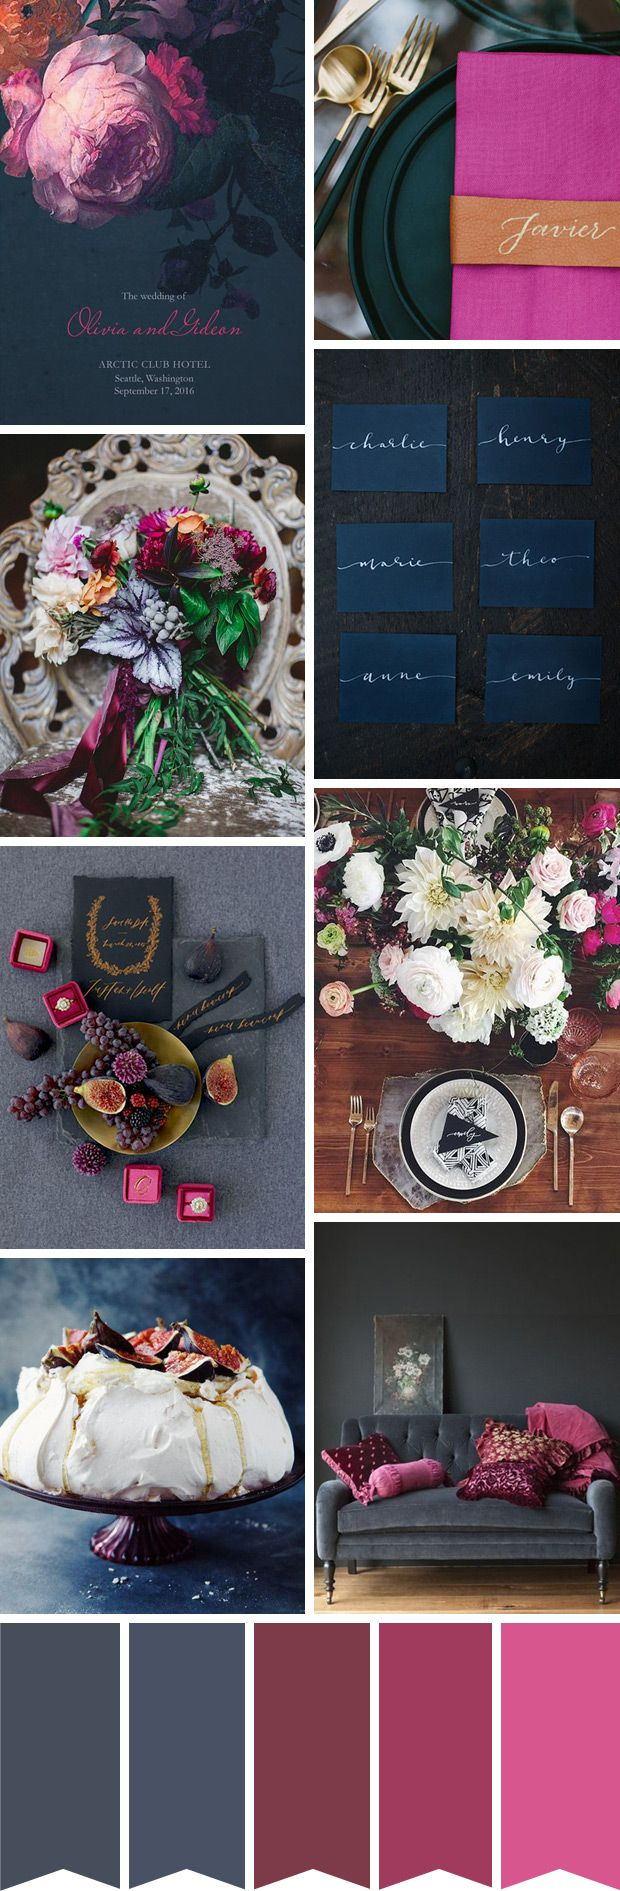 A Chic Charcoal, Navy and Fuschia Wedding Colour Palette | www.onefabday.com